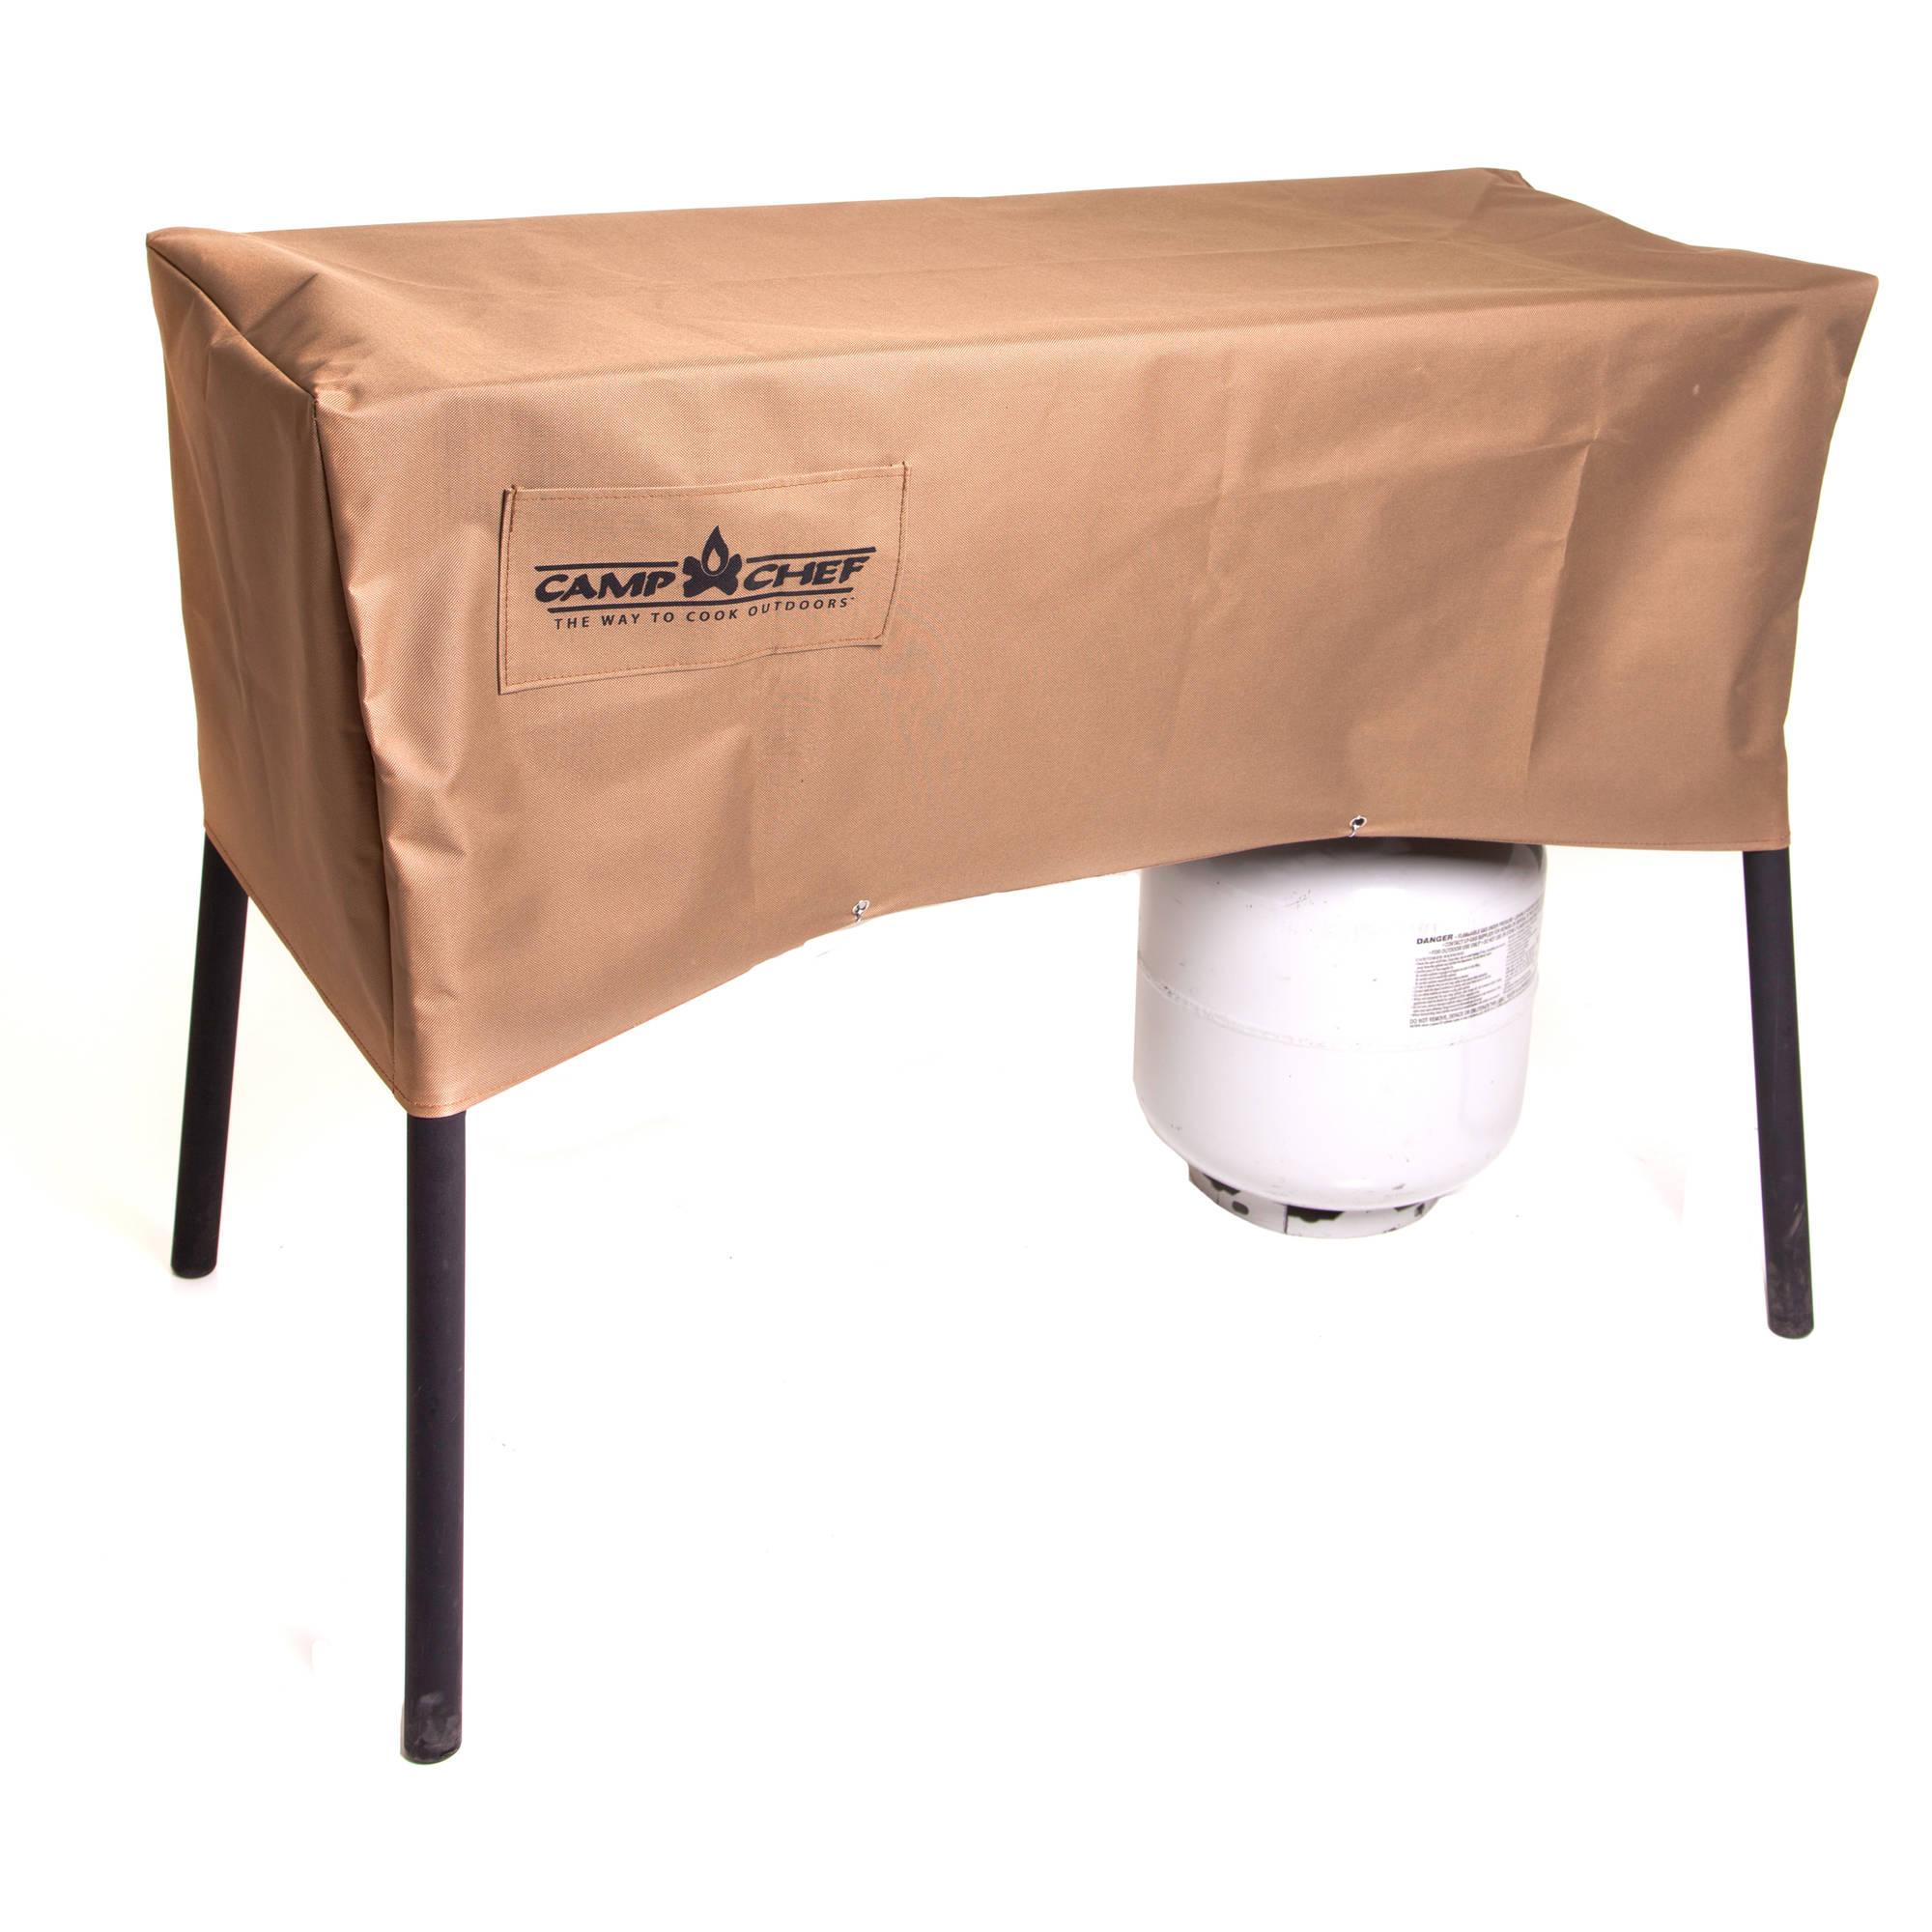 Camp Chef Patio Cover For TB90 and SPG90 Triple Burner Stove by Camp Chef